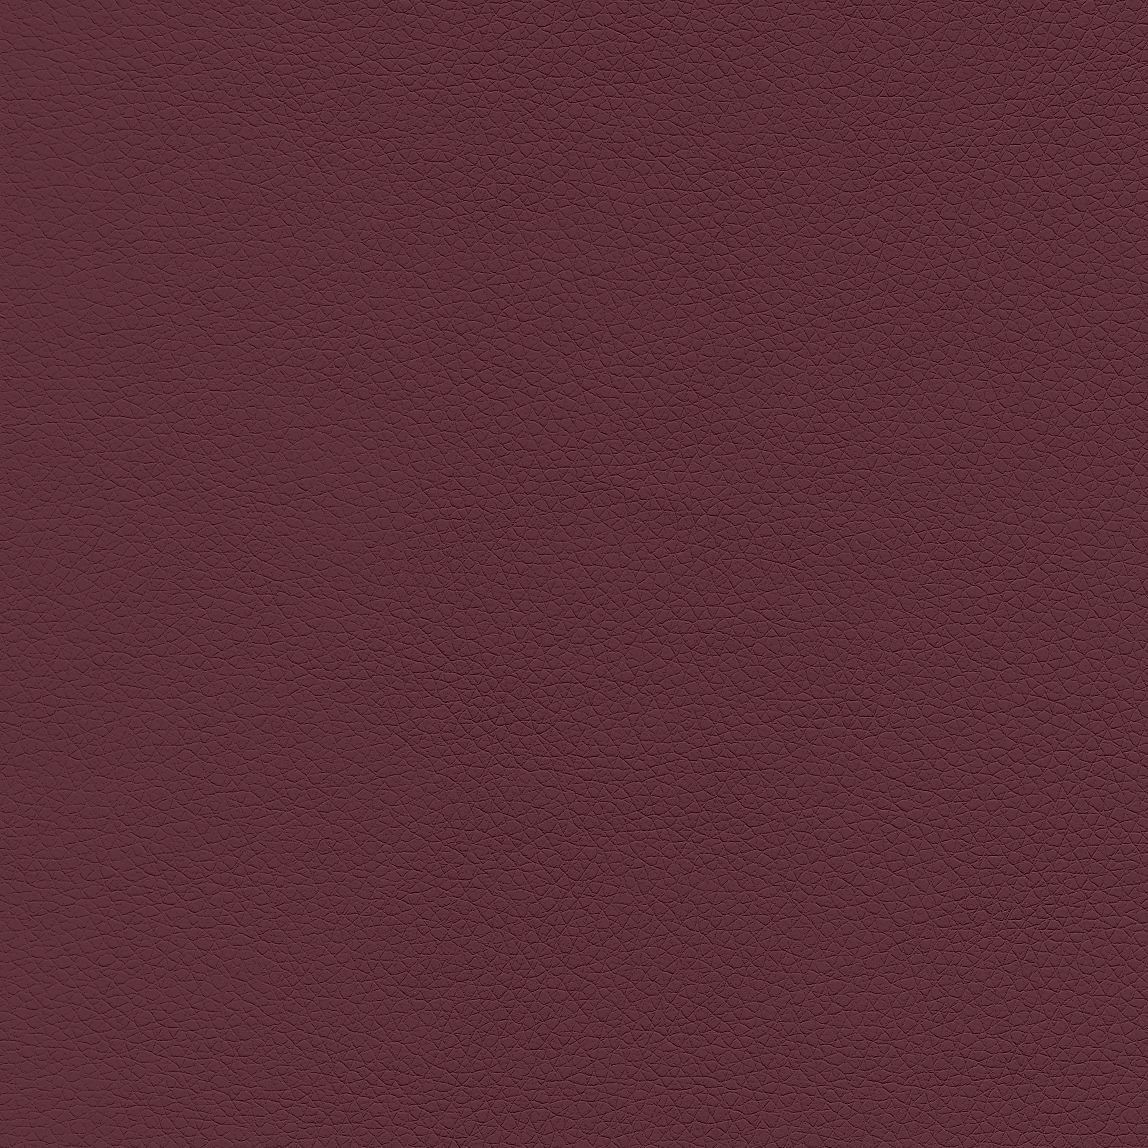 Contourett Bordeaux Swatch